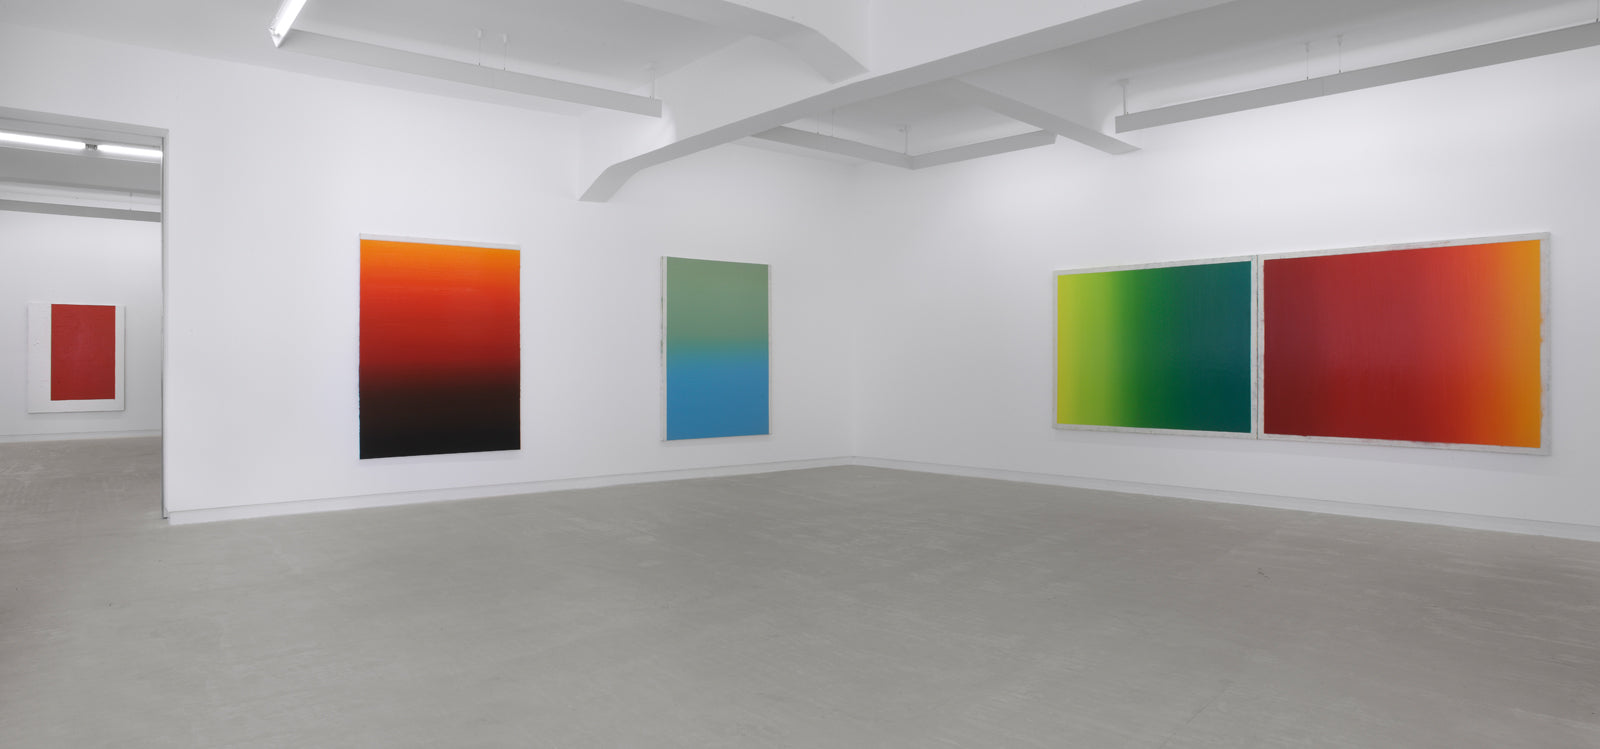 Shaan Syed, Please Play By The Rules, Installation view, 2009, Galerie Michael Janssen, Berlin